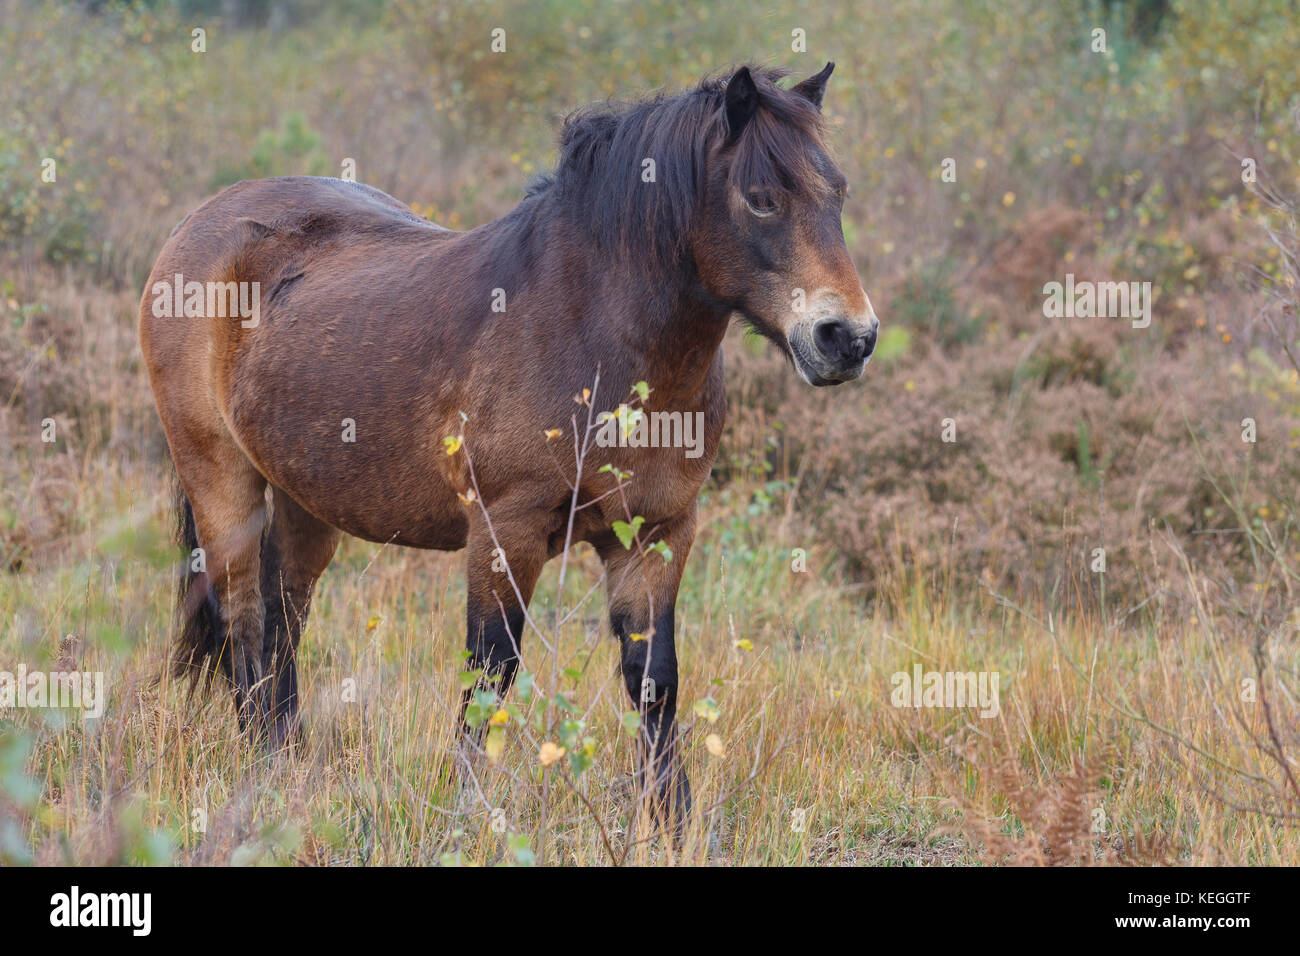 Exmoor Pony on Cleddon Bog, Monmouthshire, Wales, where it has been introduced to graze scrub for habitat restoration. - Stock Image